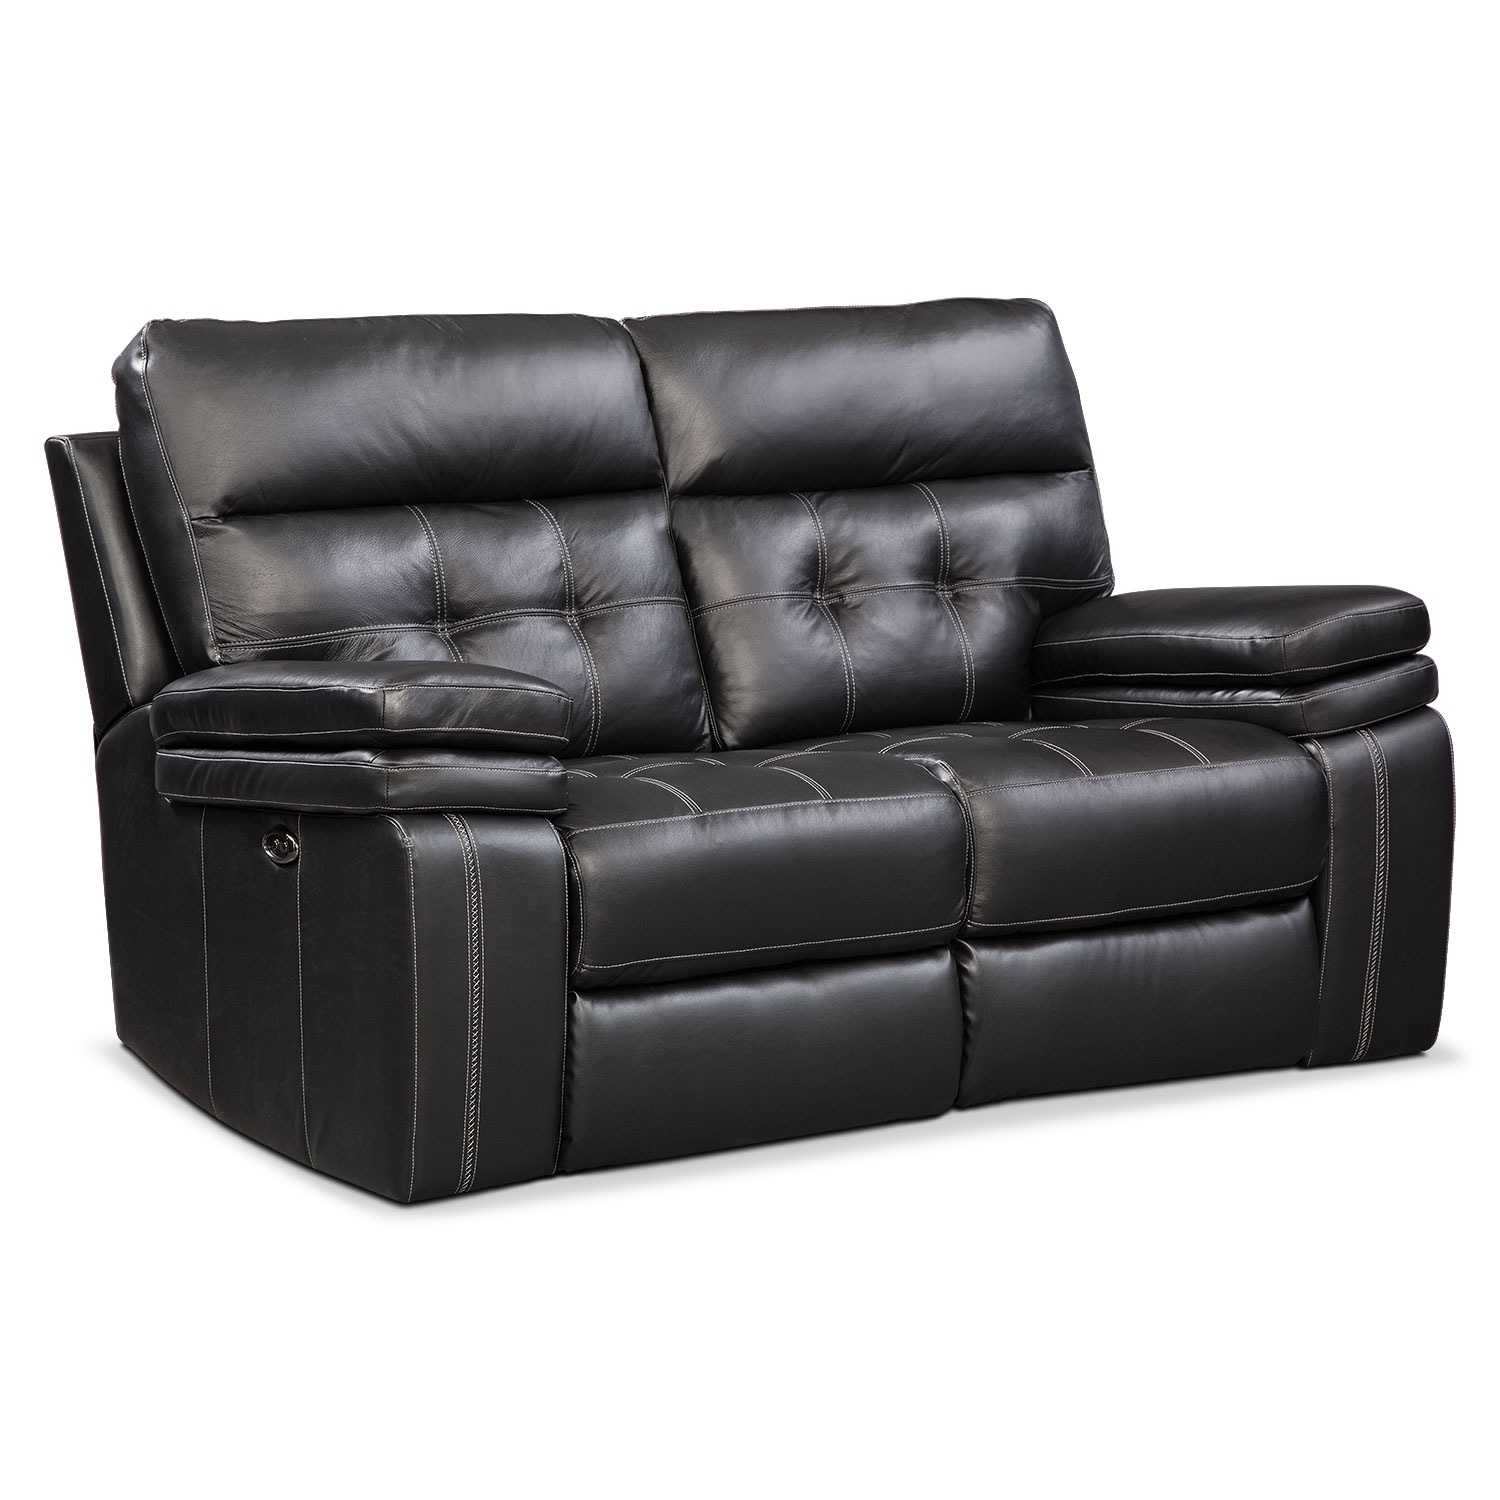 [Brisco Black Power Reclining Loveseat]